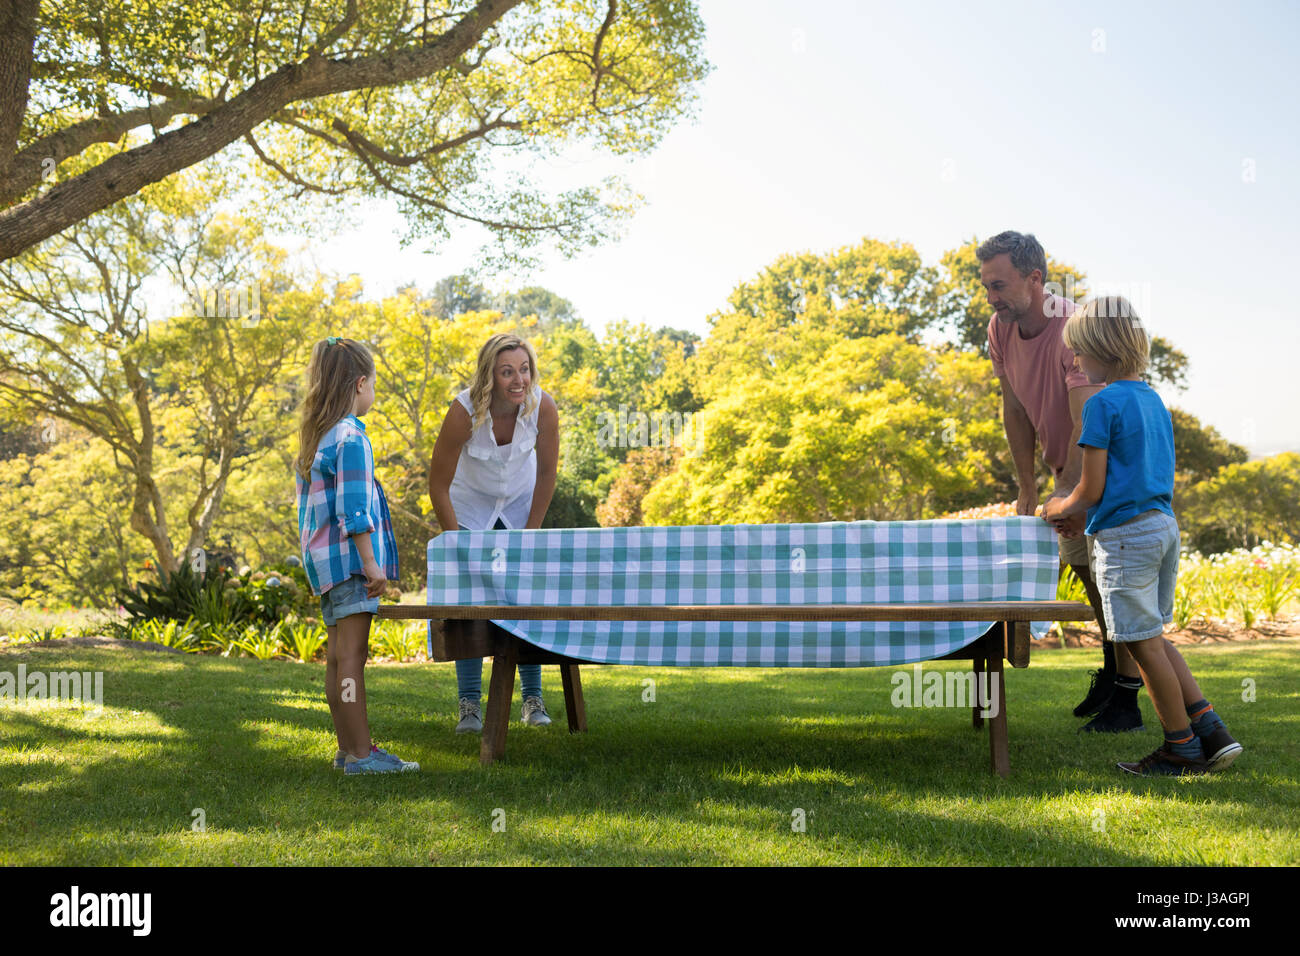 Family Spreading The Tablecloth On Picnic Table In Park